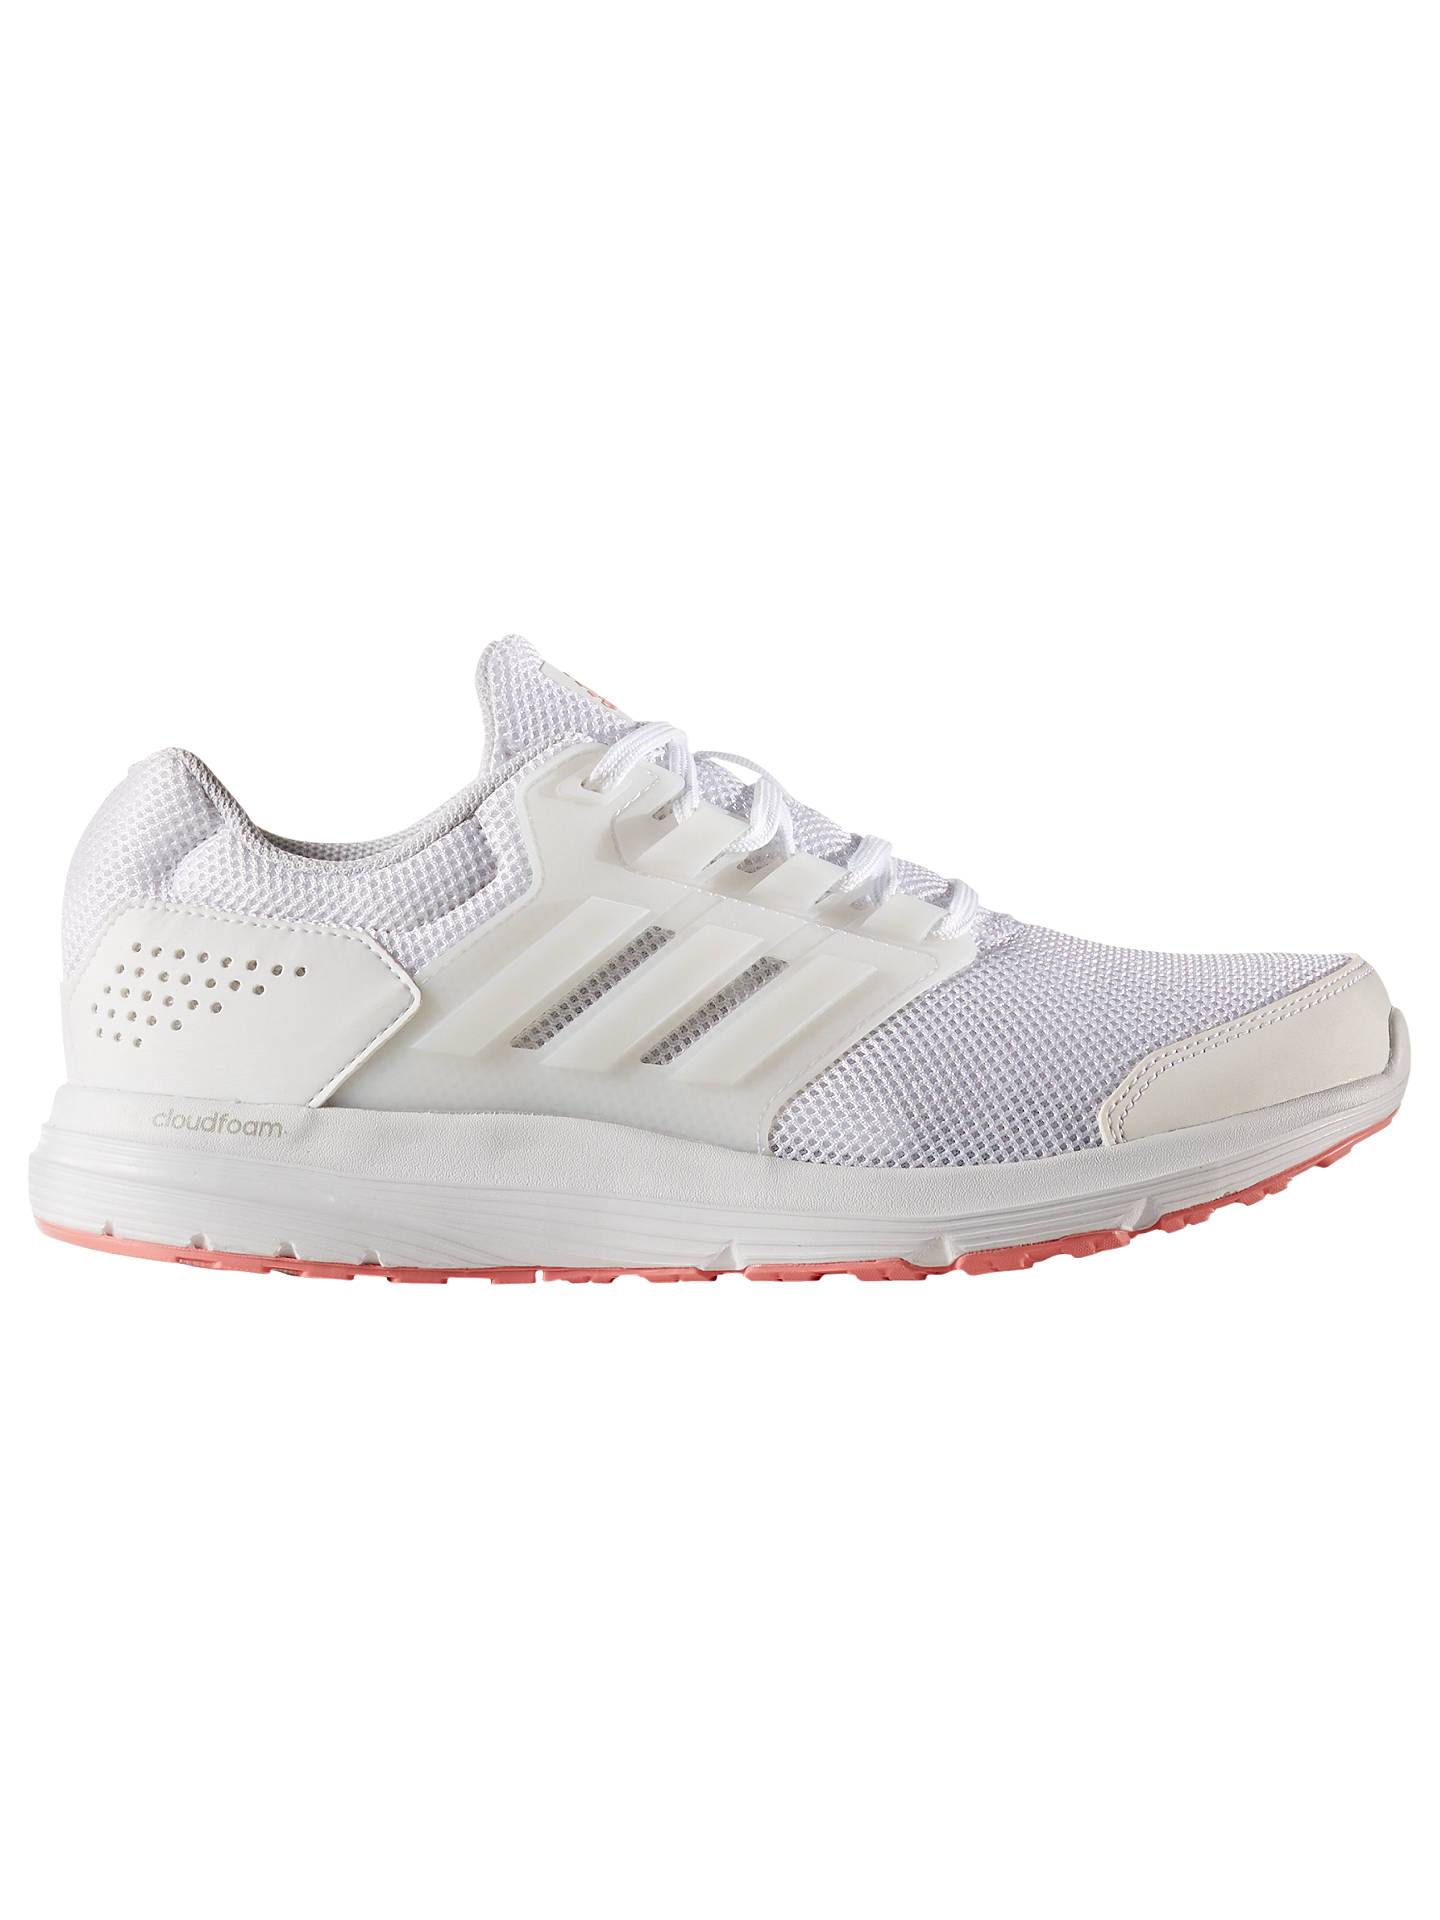 promo code 89268 63a2a Buyadidas Galaxy 4 Womens Running Shoes, WhiteRose, 4 Online at johnlewis.